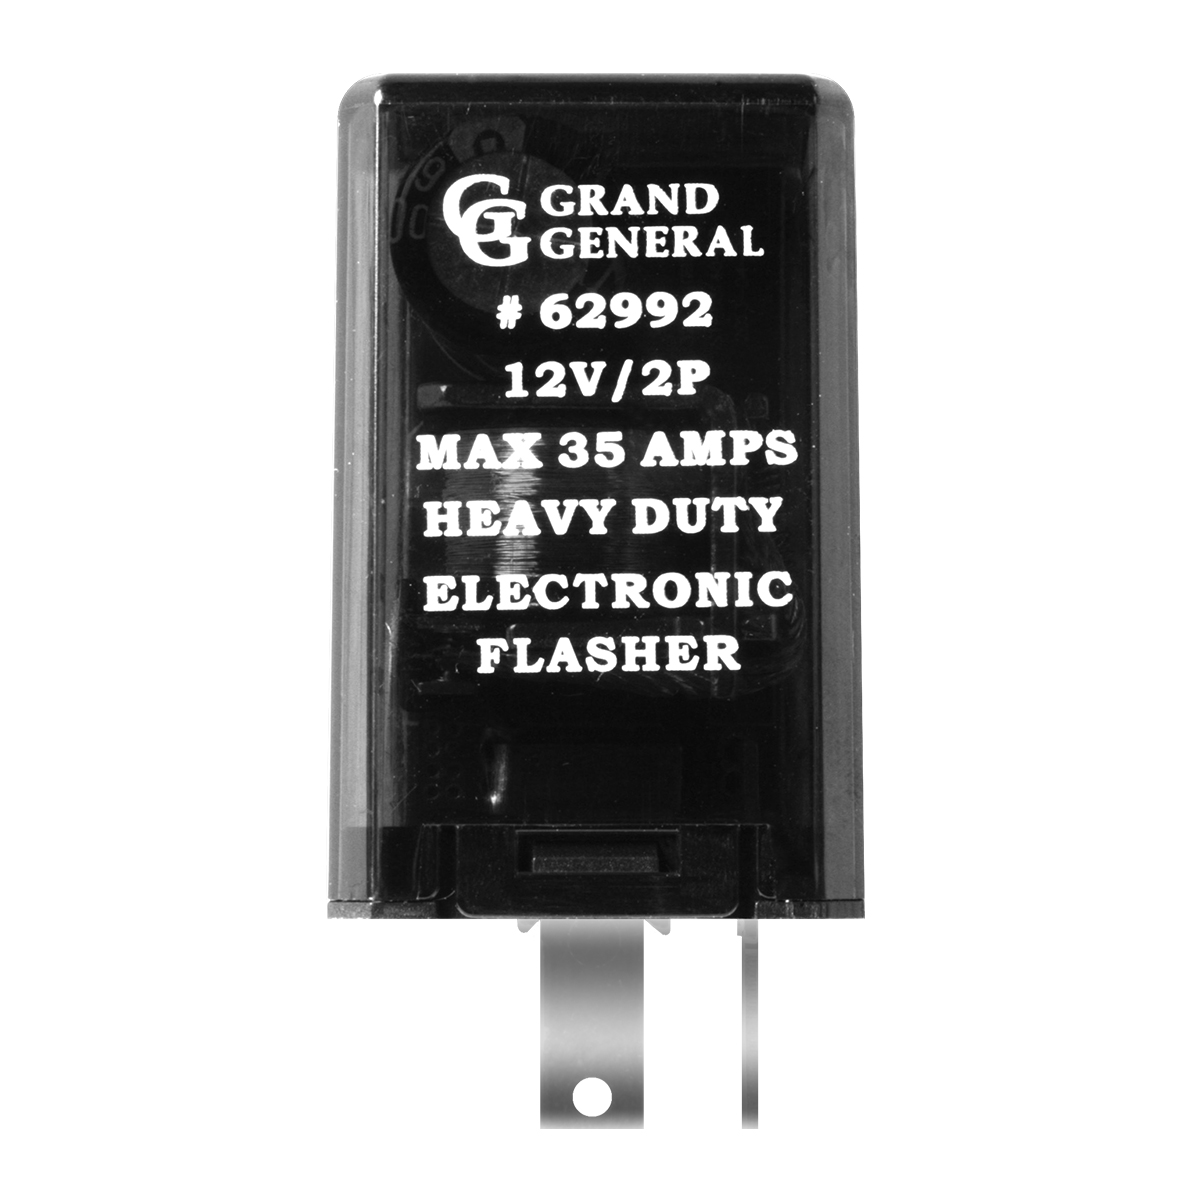 62992 Rectangular LED Flasher w/ 2 Pins & Max 35 AMPS